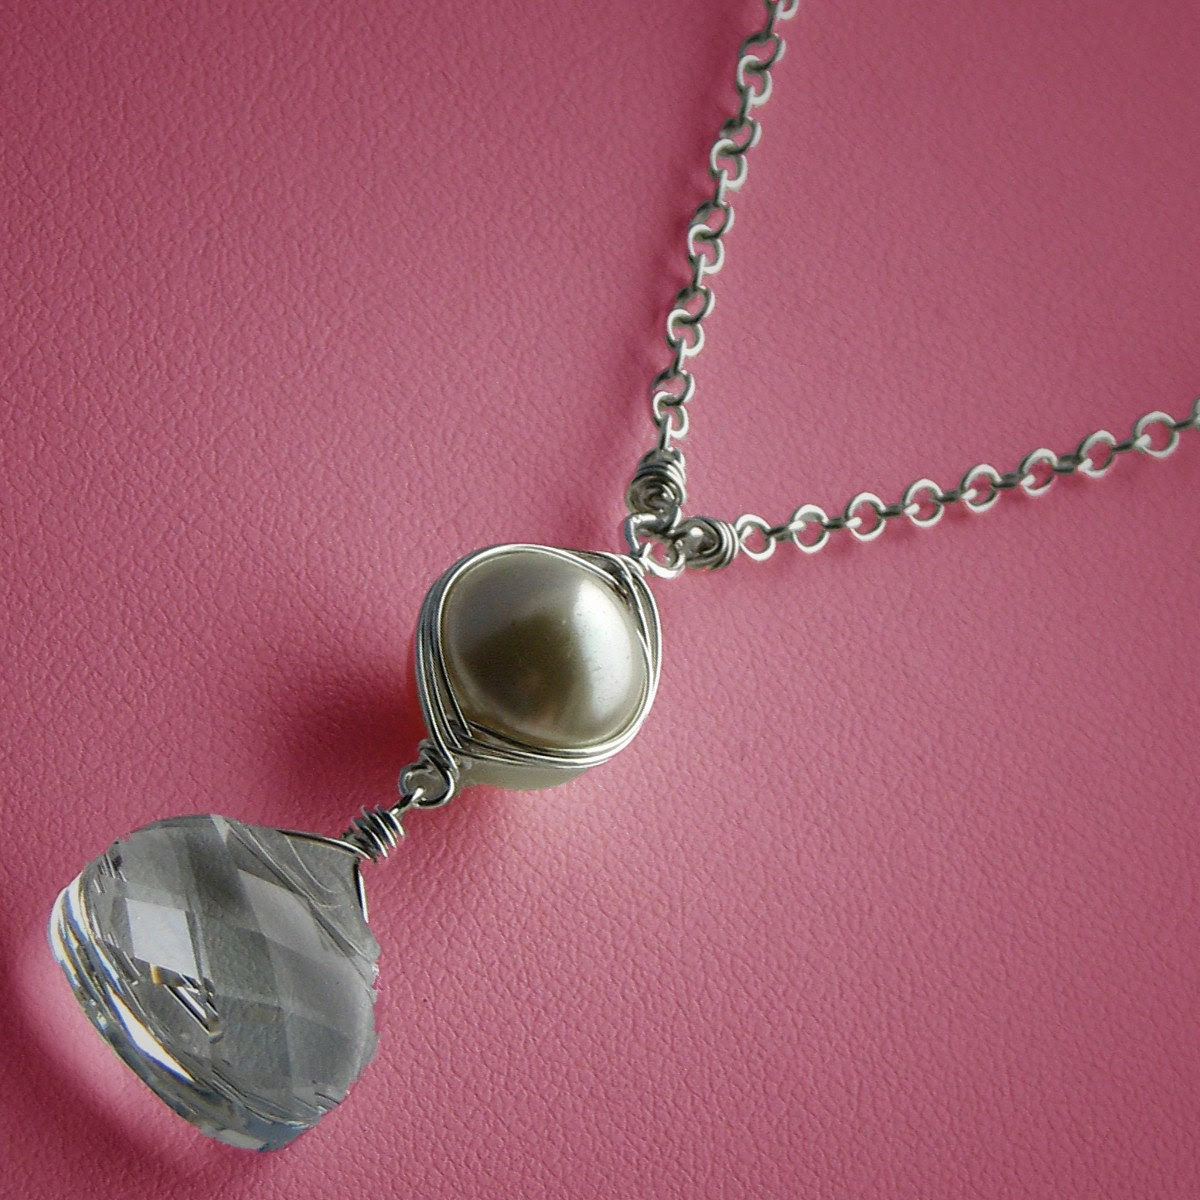 Winter White Wire-wrapped Necklace, Ivory Freshwater Pearl Hand-wrapped in Sterling Silver, Swarovski Crystal Briolette